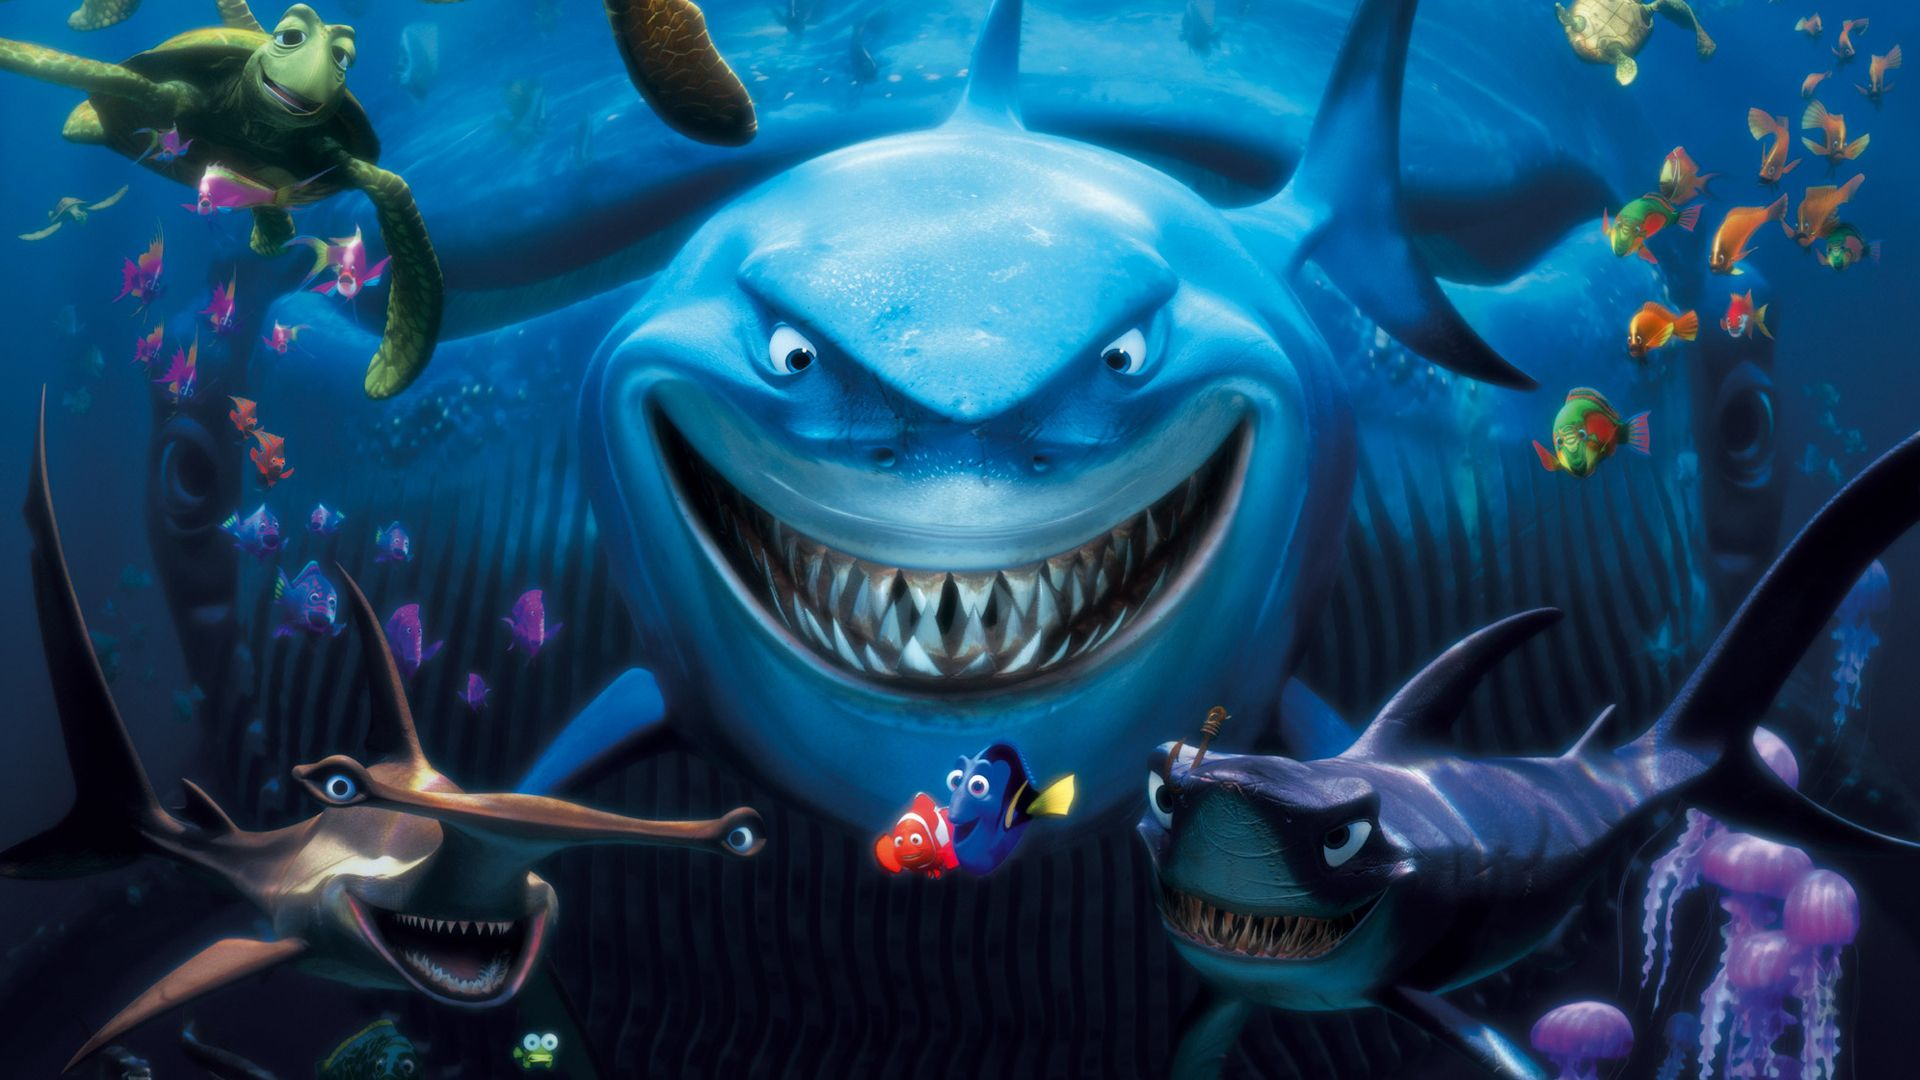 Finding Nemo D Animasi Hd Wallpaper: Free Download Latest Finding